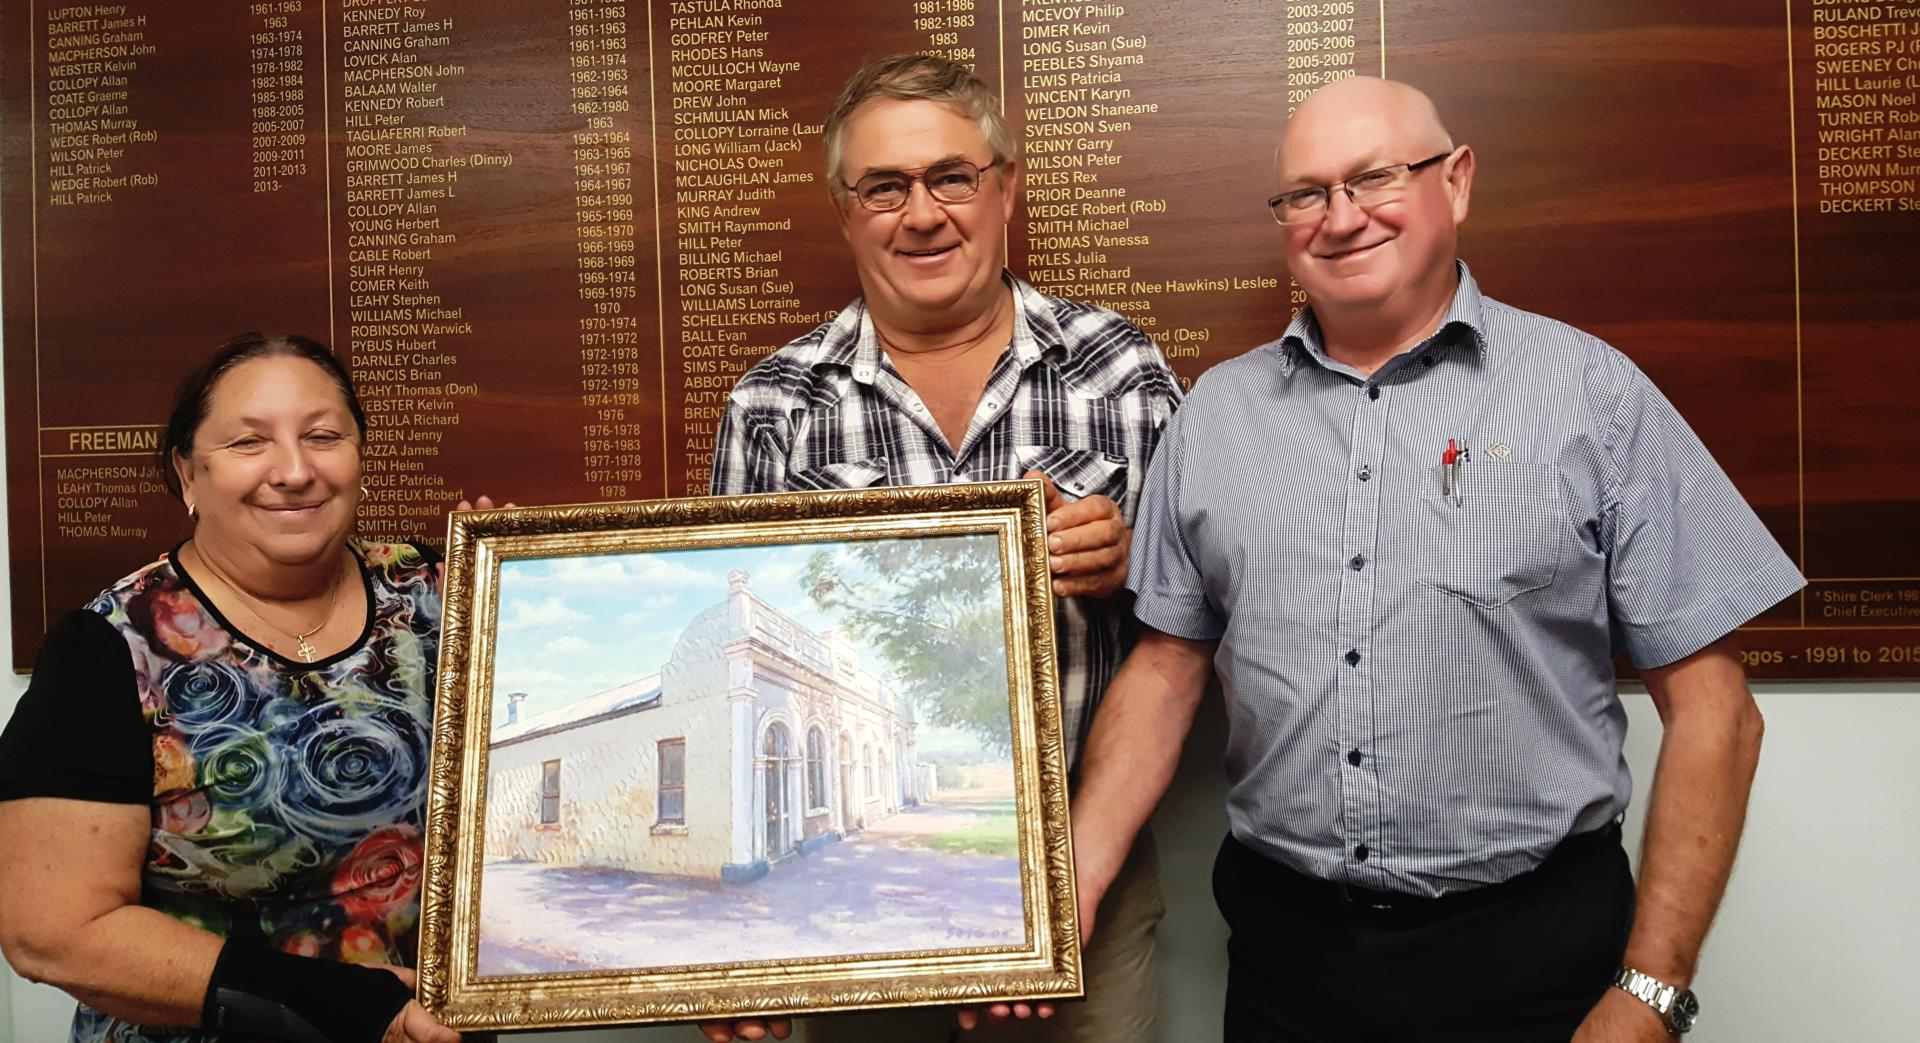 Cr Rosemary Street presenting the Coach House painting to Cr Pat Hill, Shire President and Peter Naylor, Chief Executive Officer.